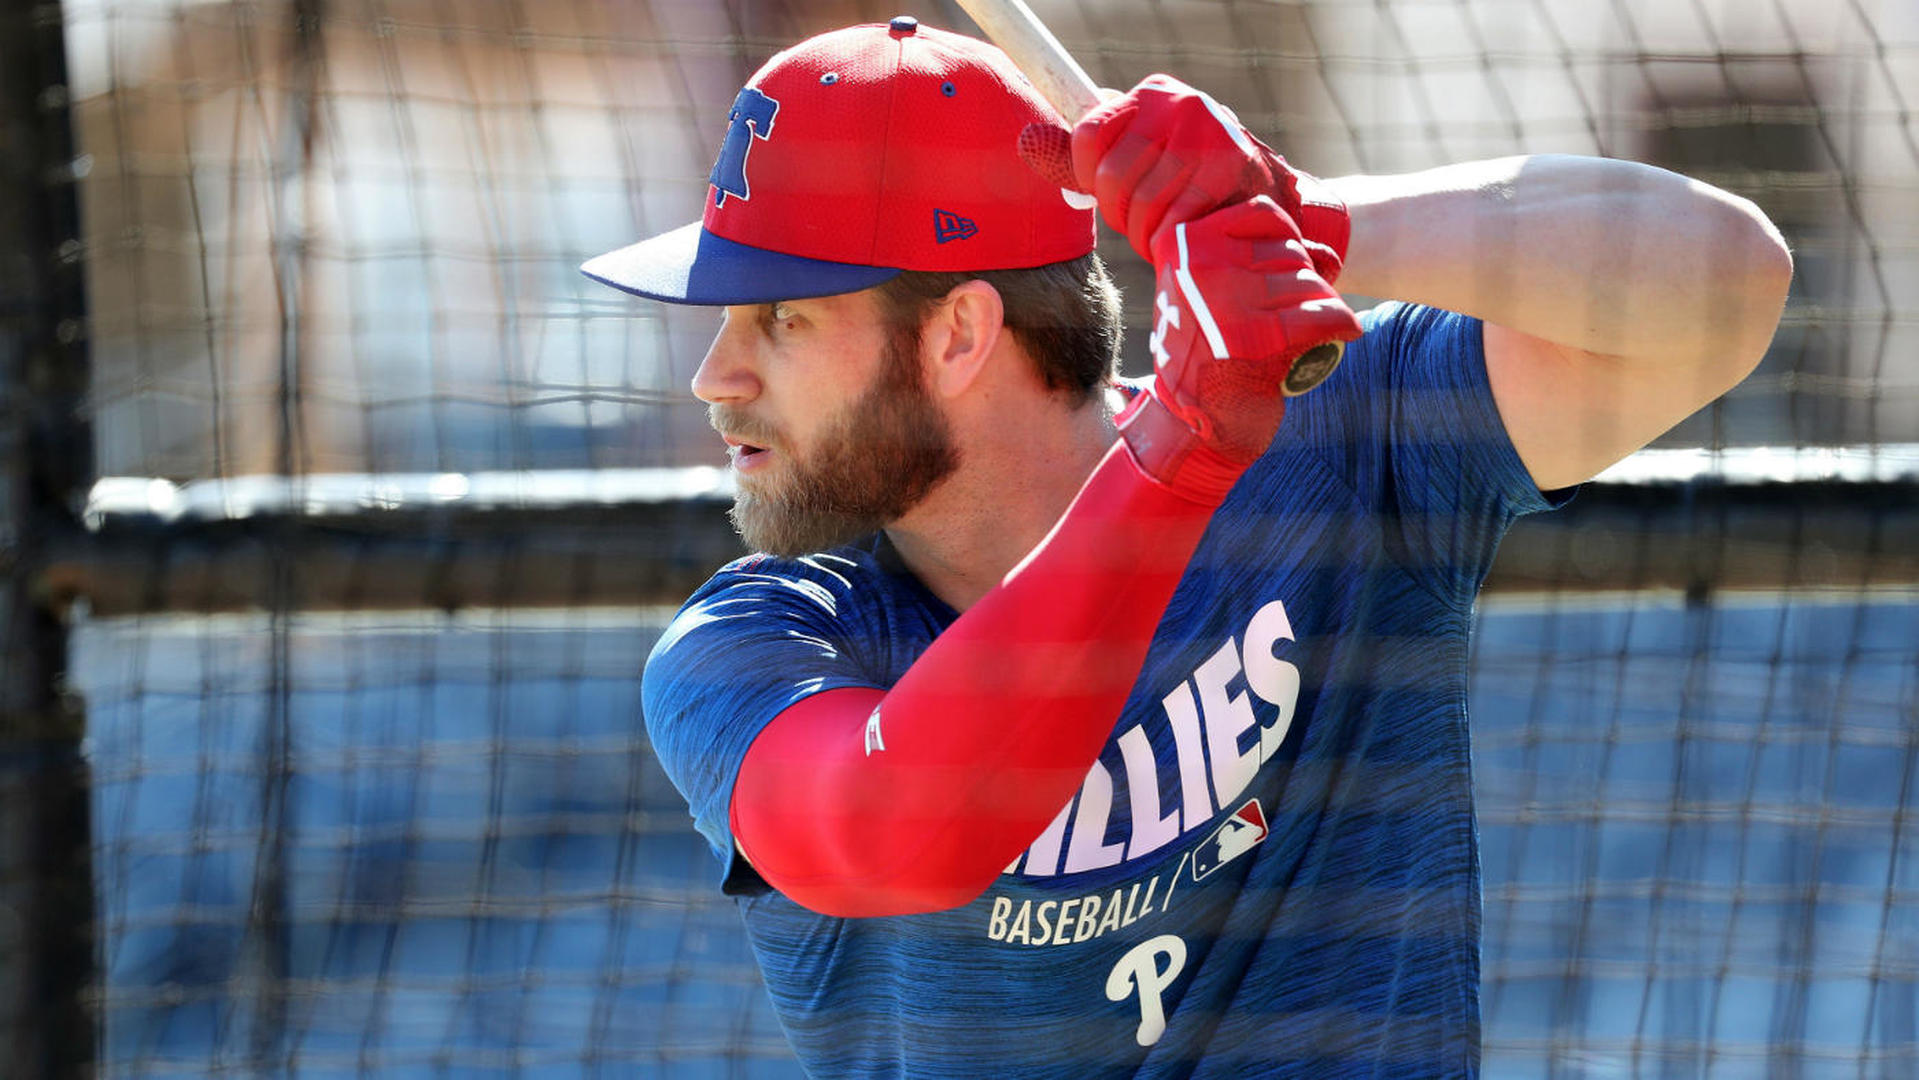 Bryce Harper makes spring debut and uses 'Fresh Prince' theme as walk-up song